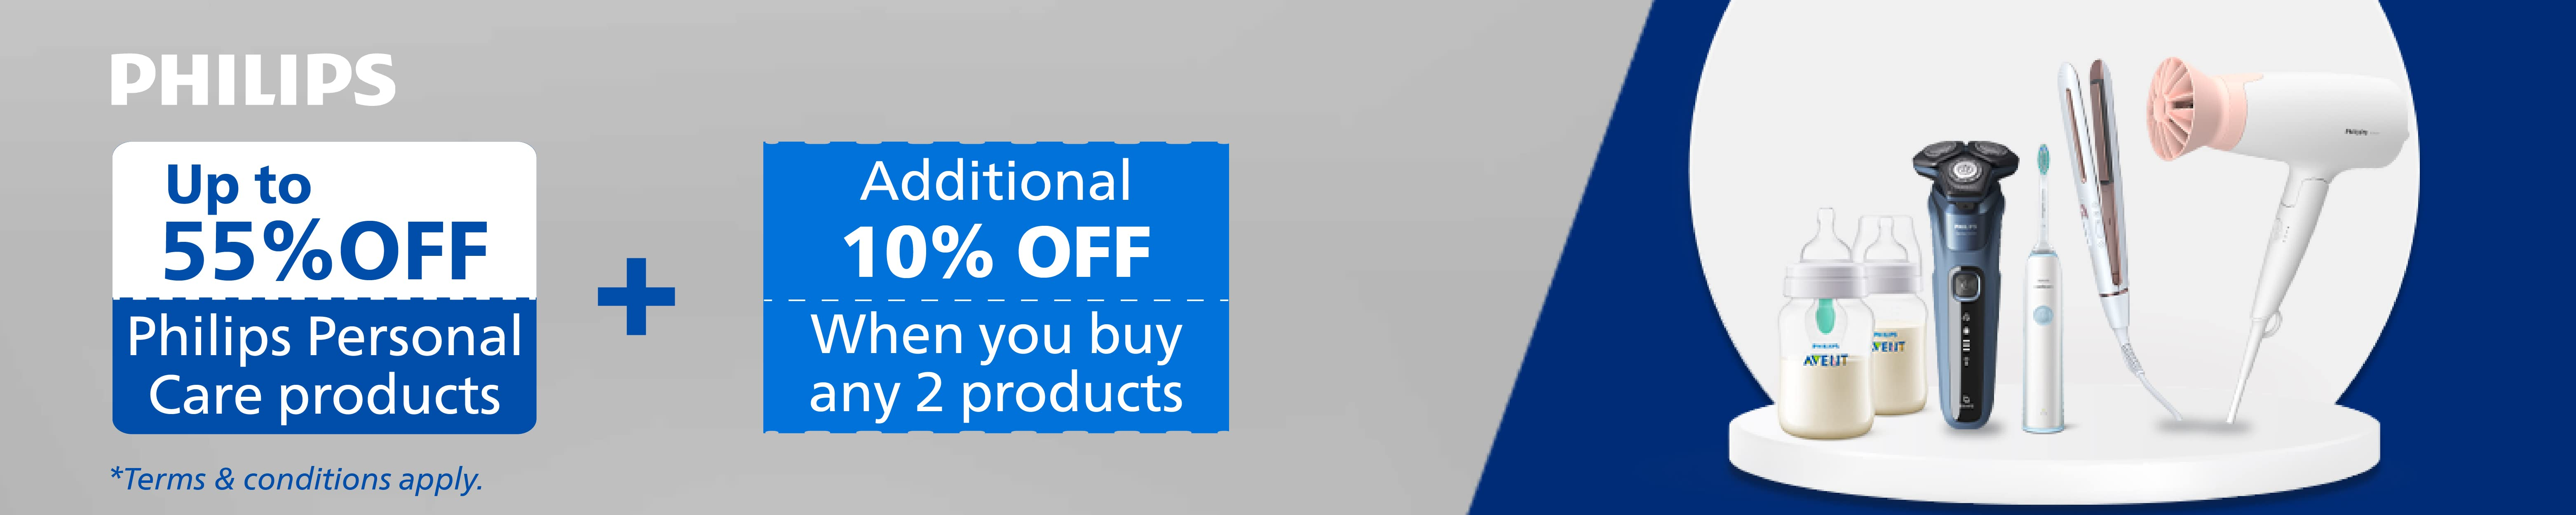 Up to 55% off, Buy 2 extra 10% off Philips products